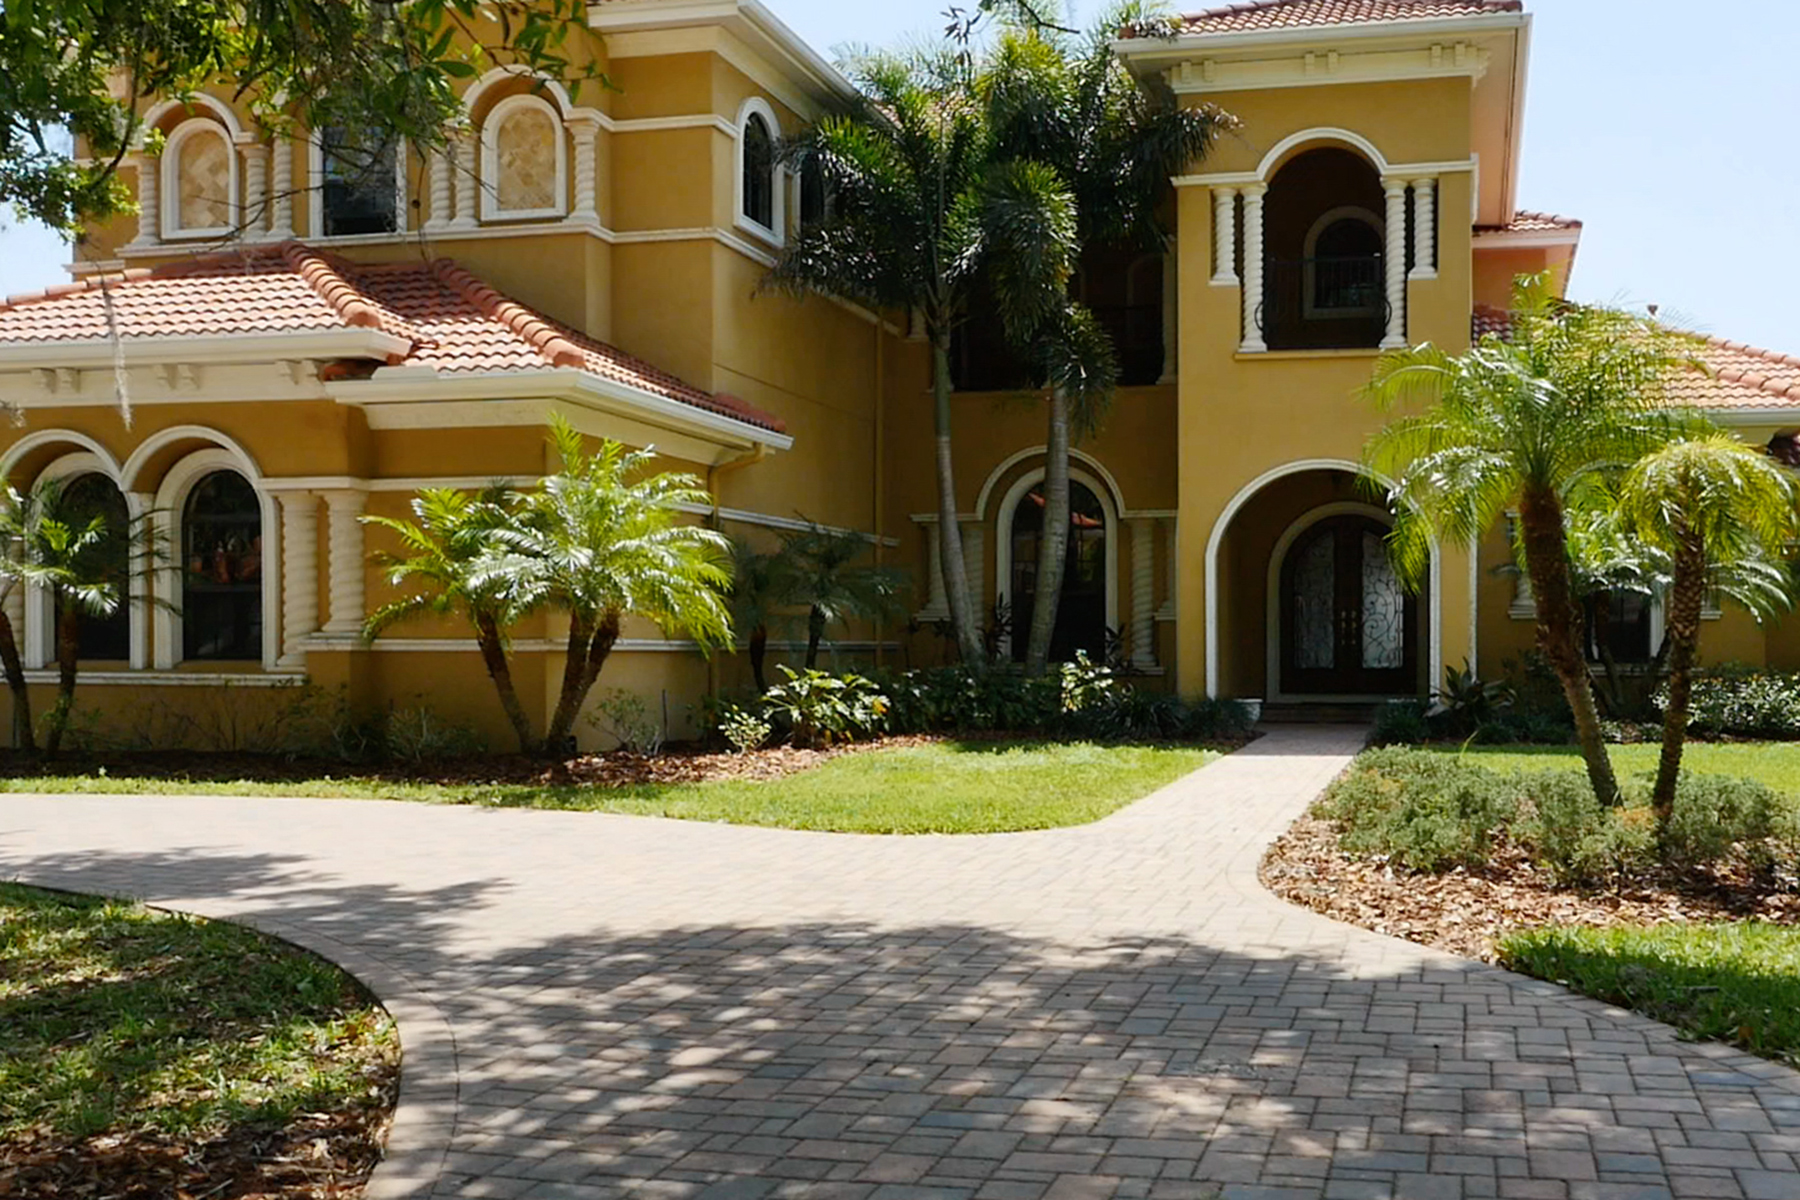 Single Family Home for Sale at TAMPA 9528 Tree Tops Lake Rd Tampa, Florida, 33626 United States